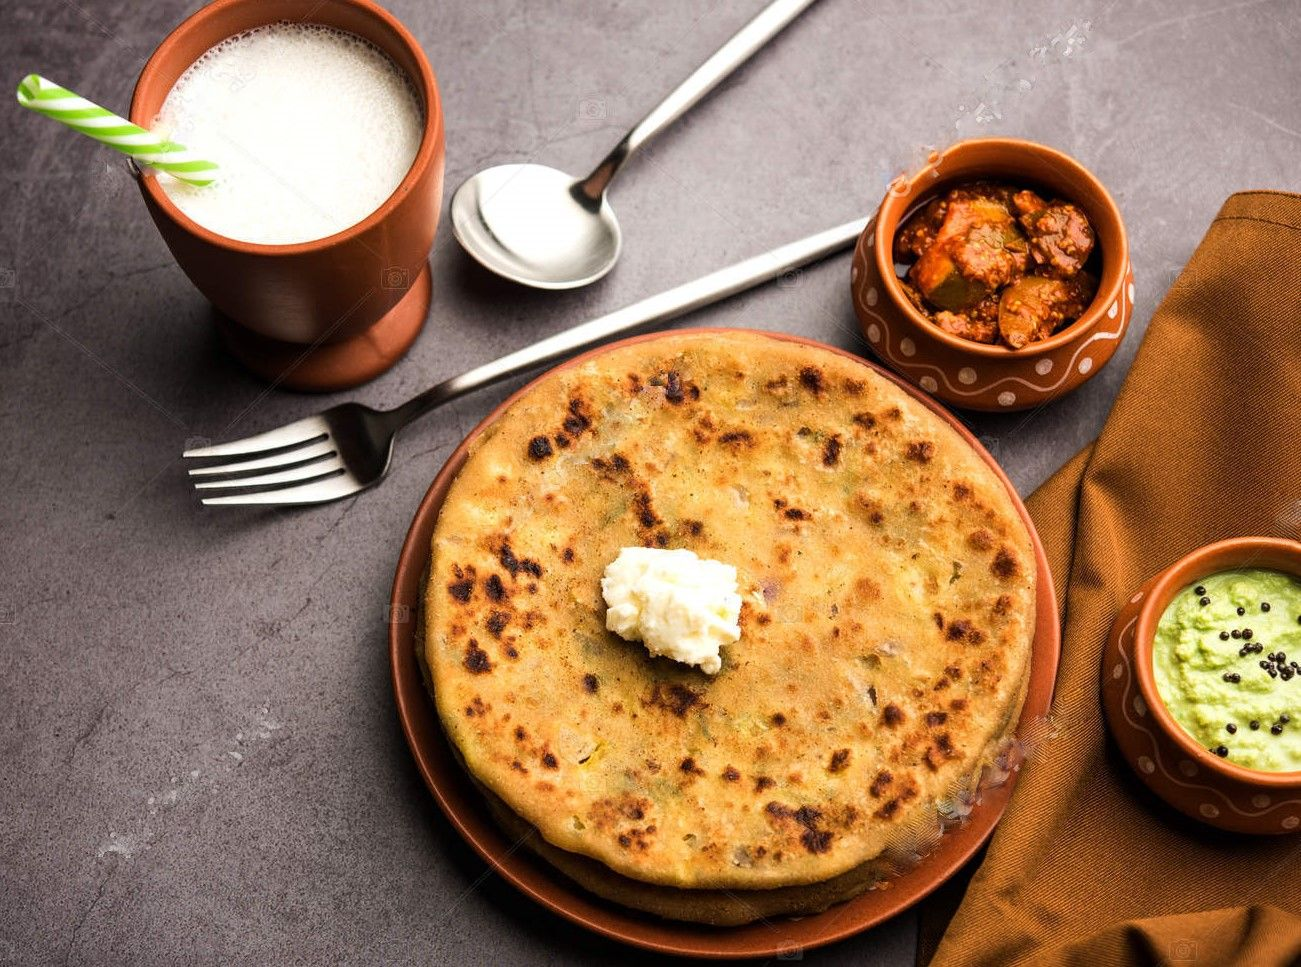 How to make tasty and healthier aloo paratha or aloo ka paratha or potato-filled and shallow fried chapati?